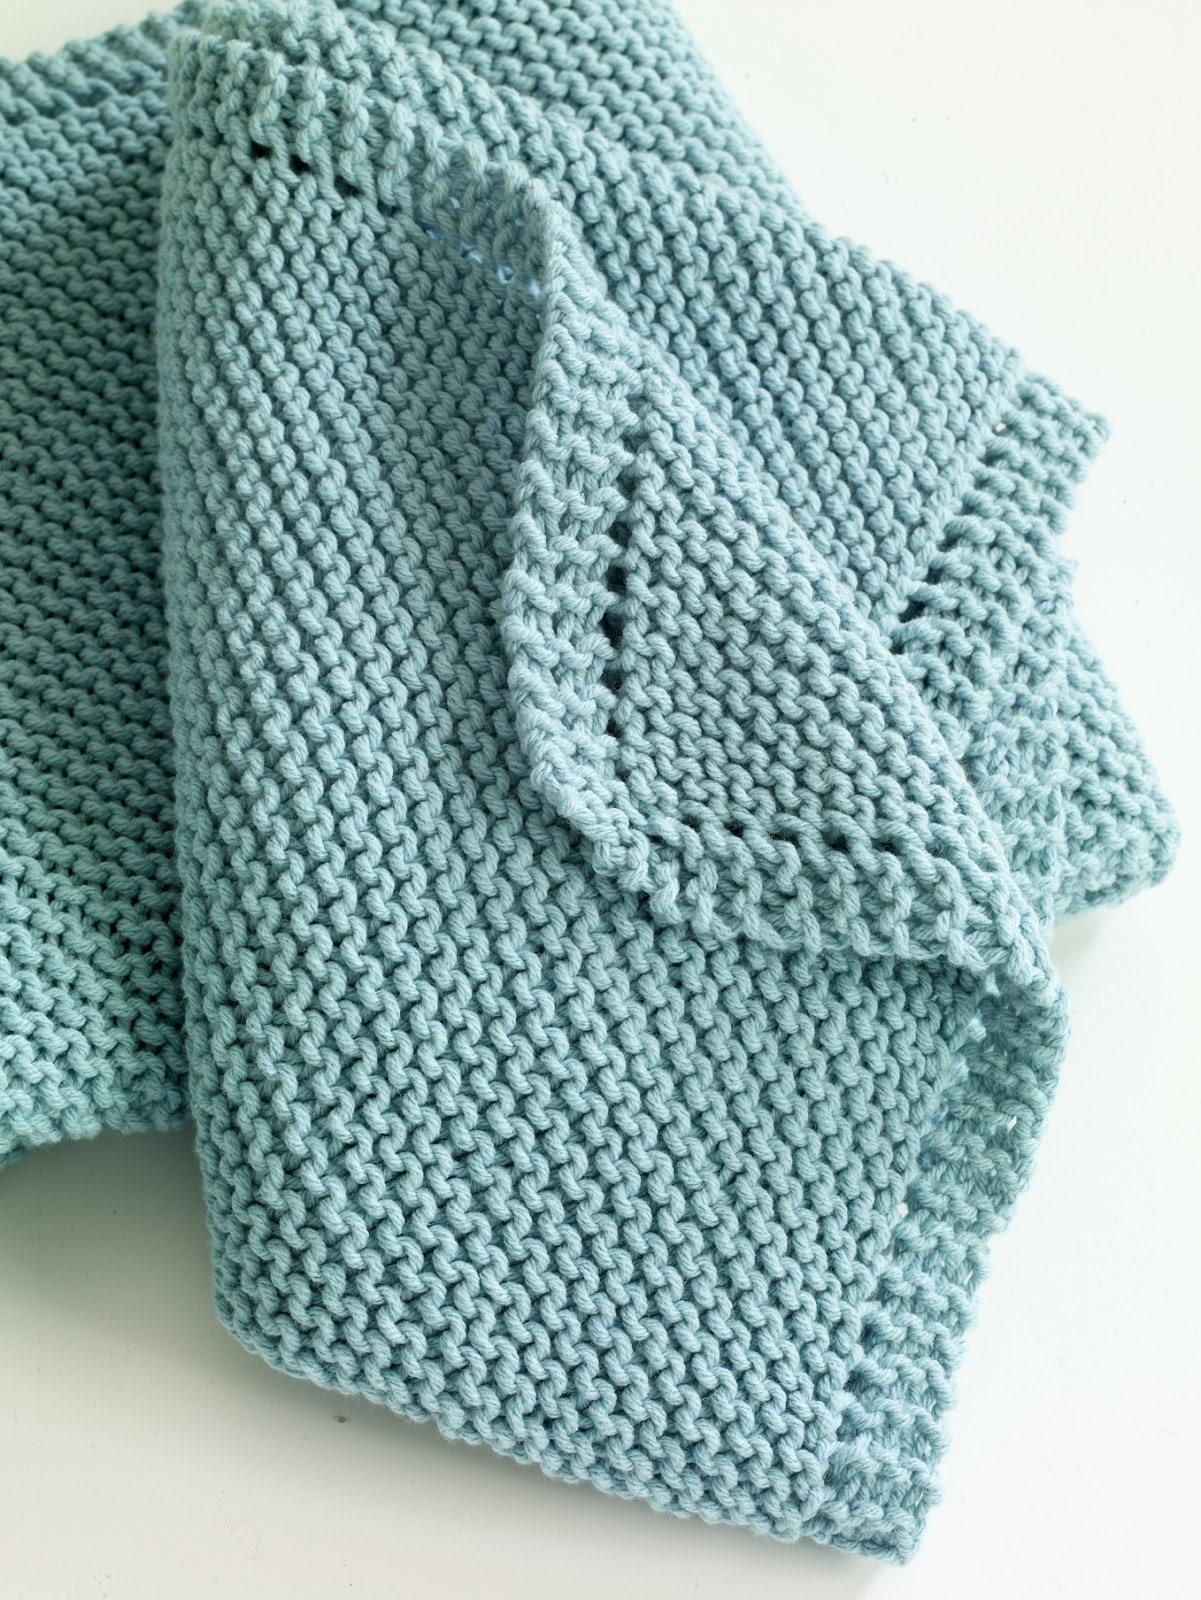 Free Knitting Patterns Blanket : Serenity Knits